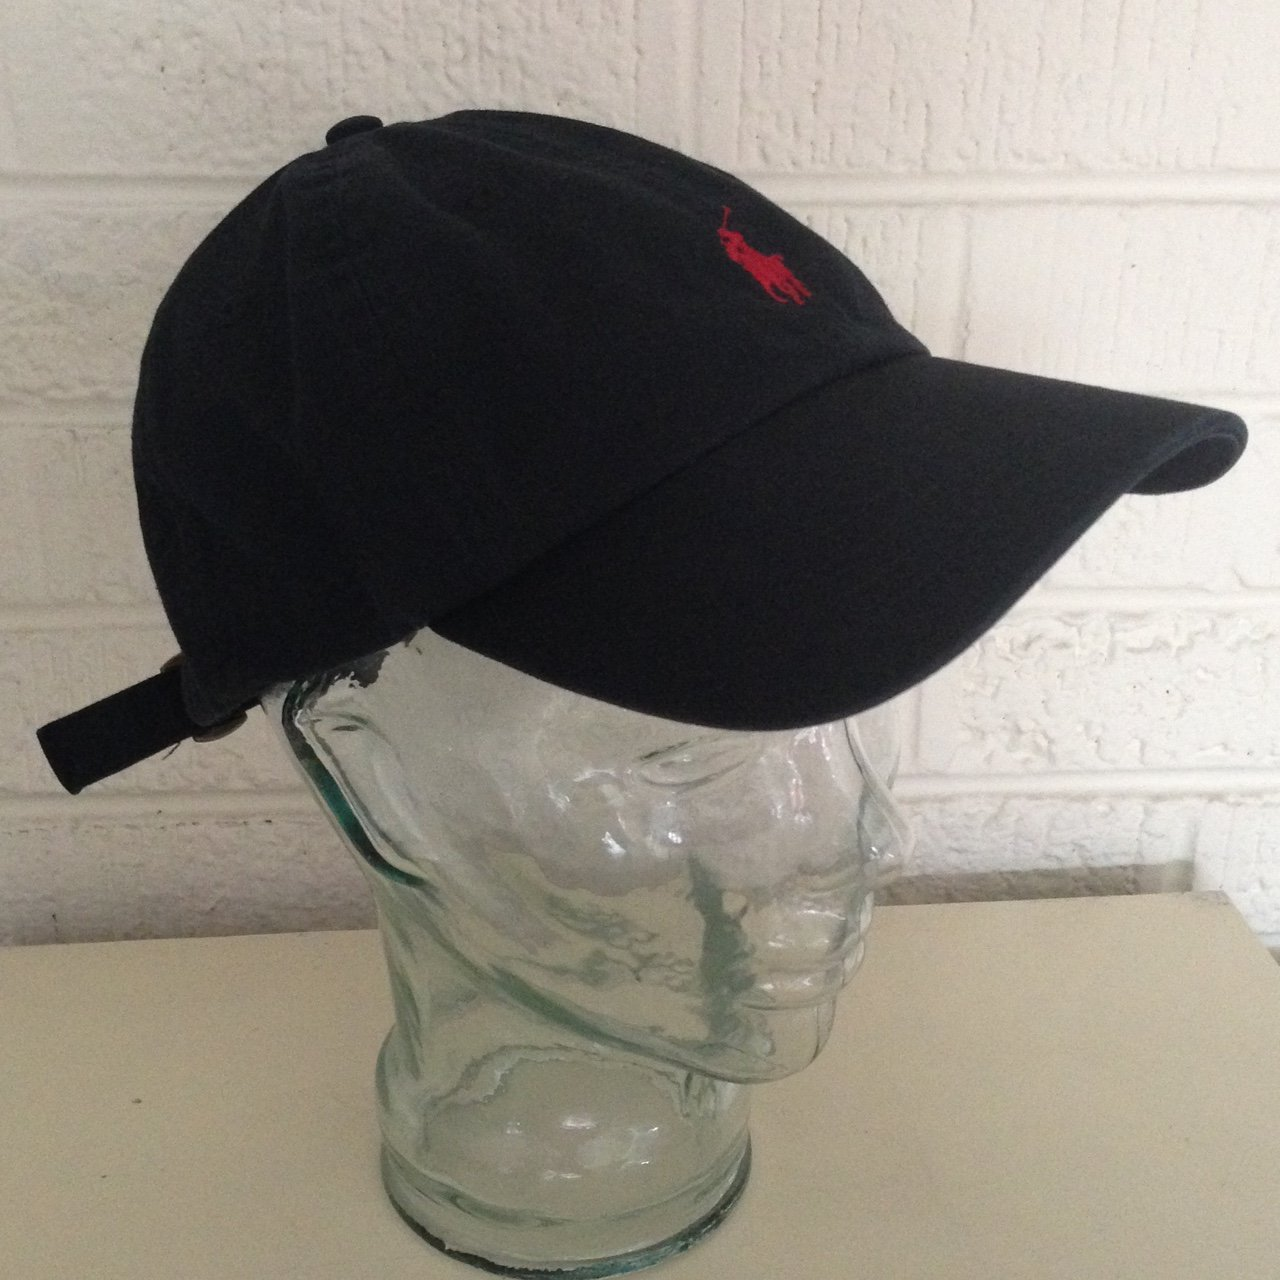 60bb65589d7 Polo hat black with red one size fits all. - Depop